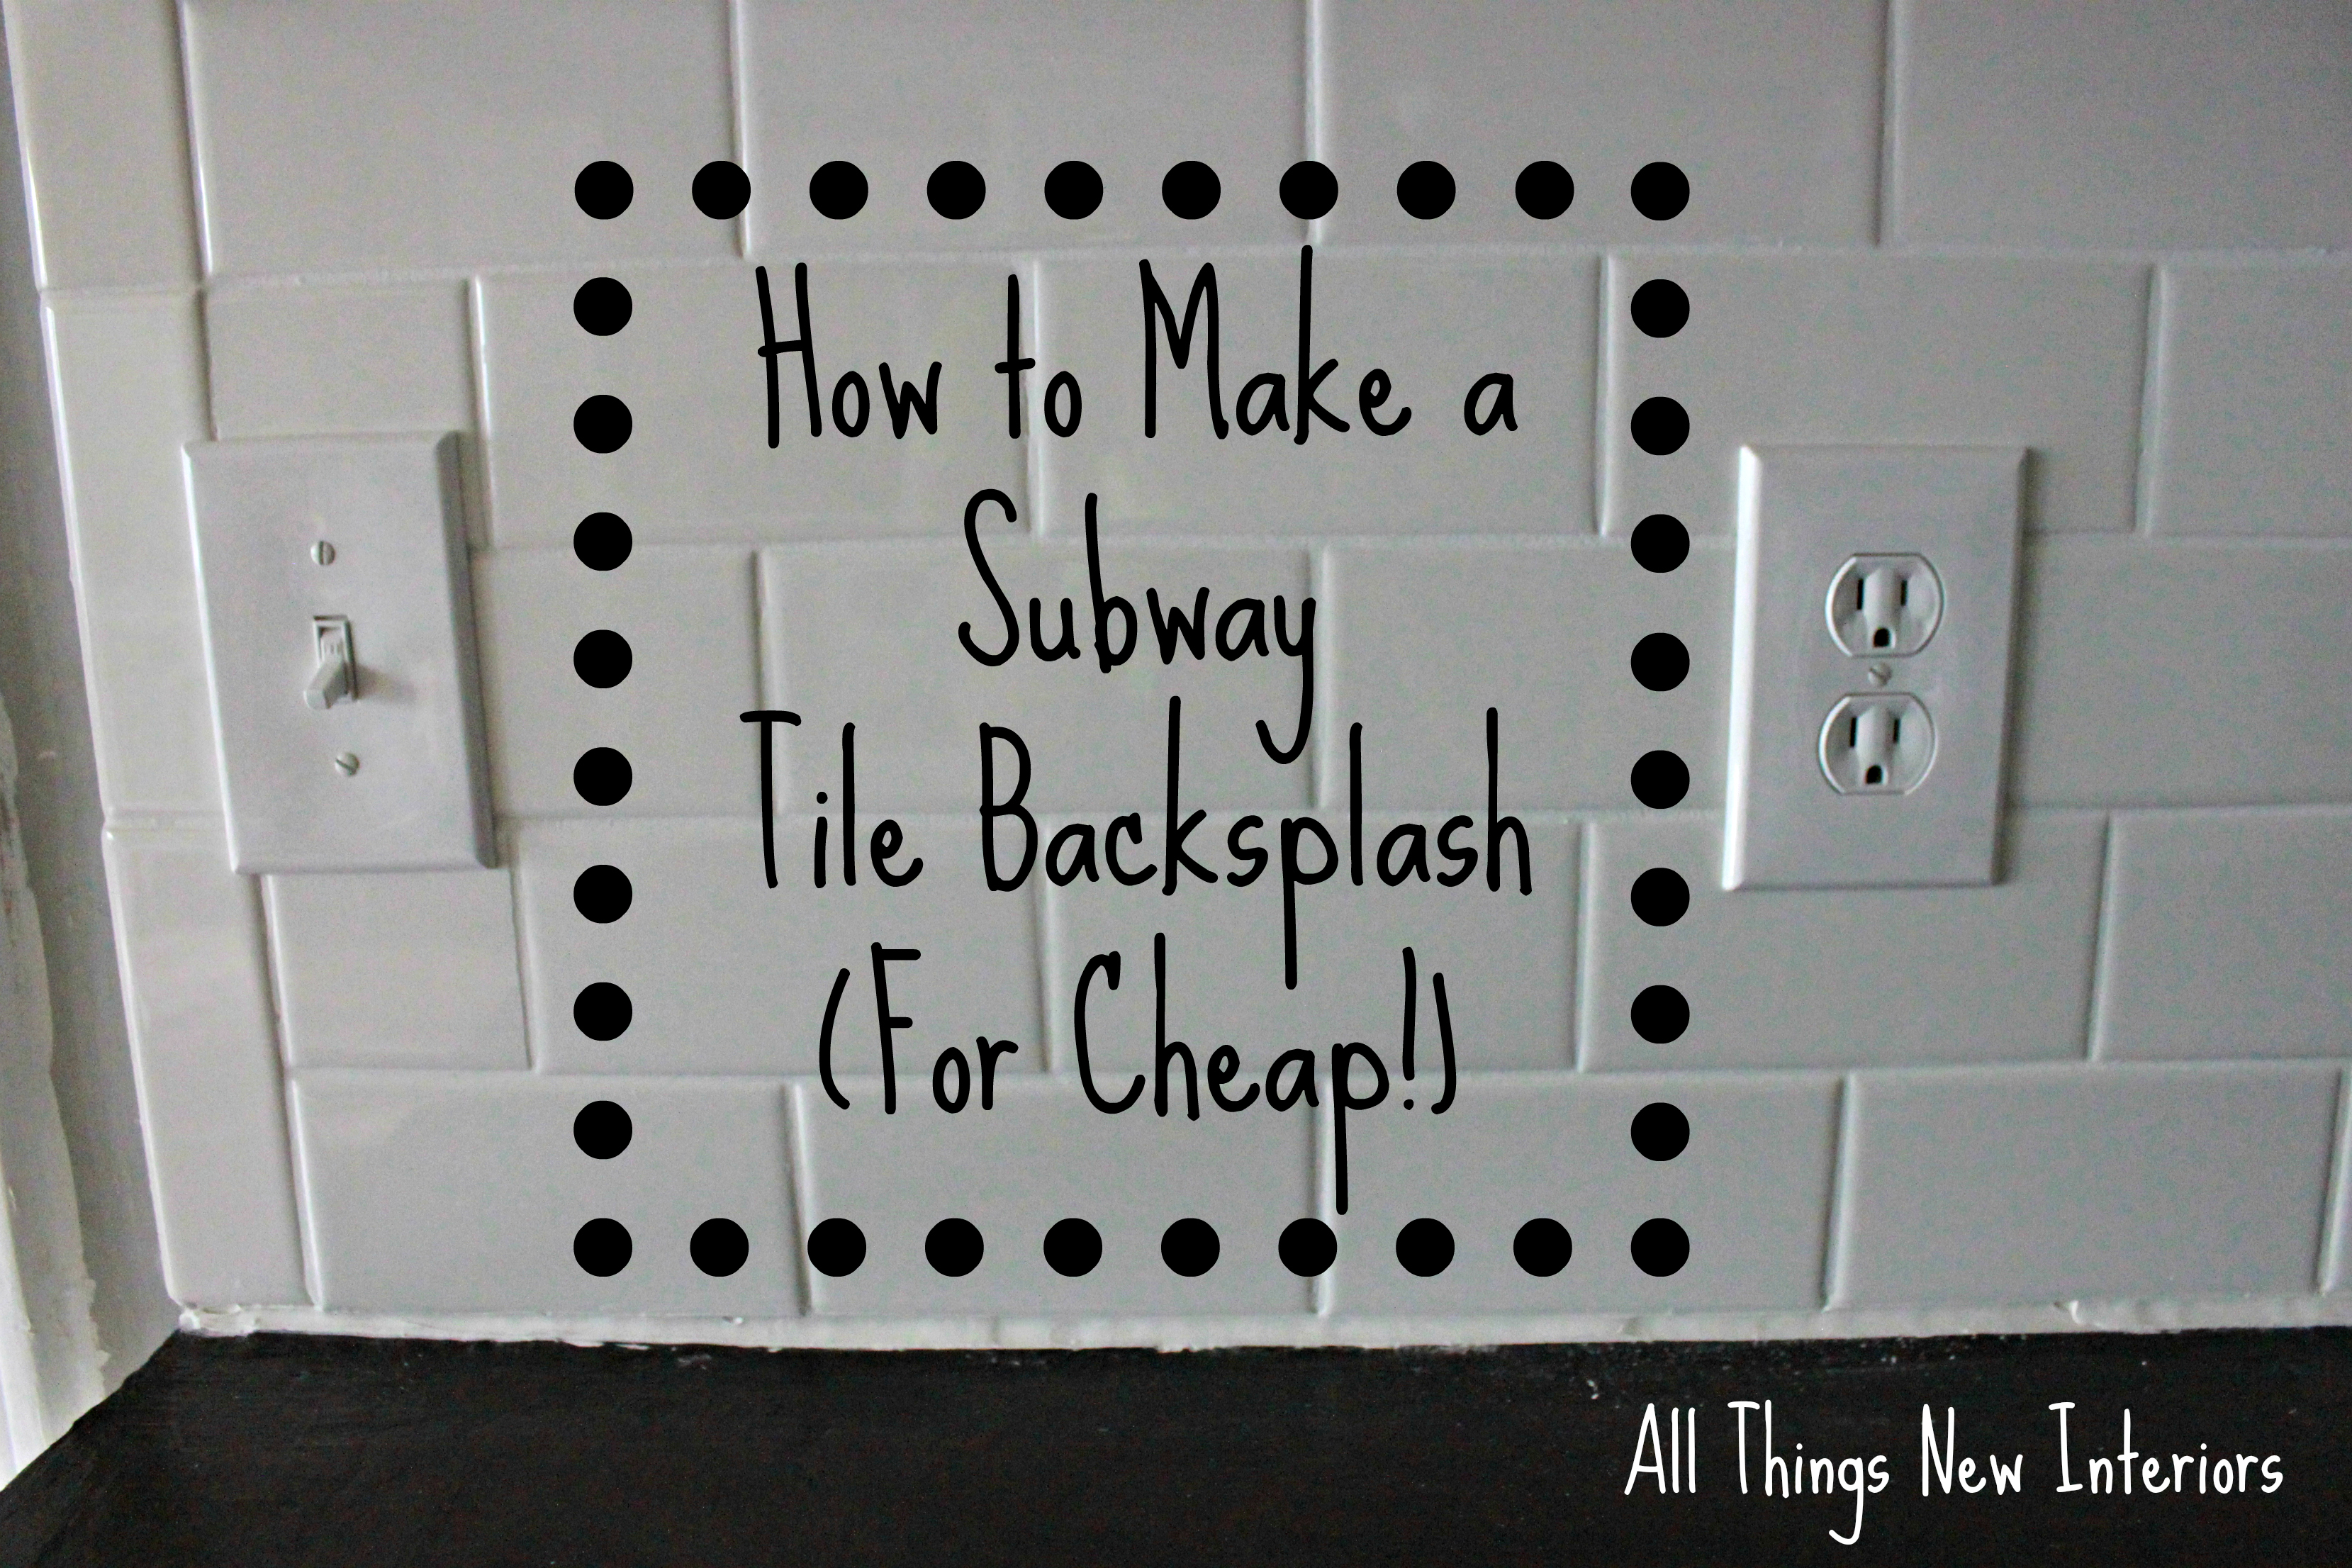 How To Make A Subway Tile Backsplash For Cheap